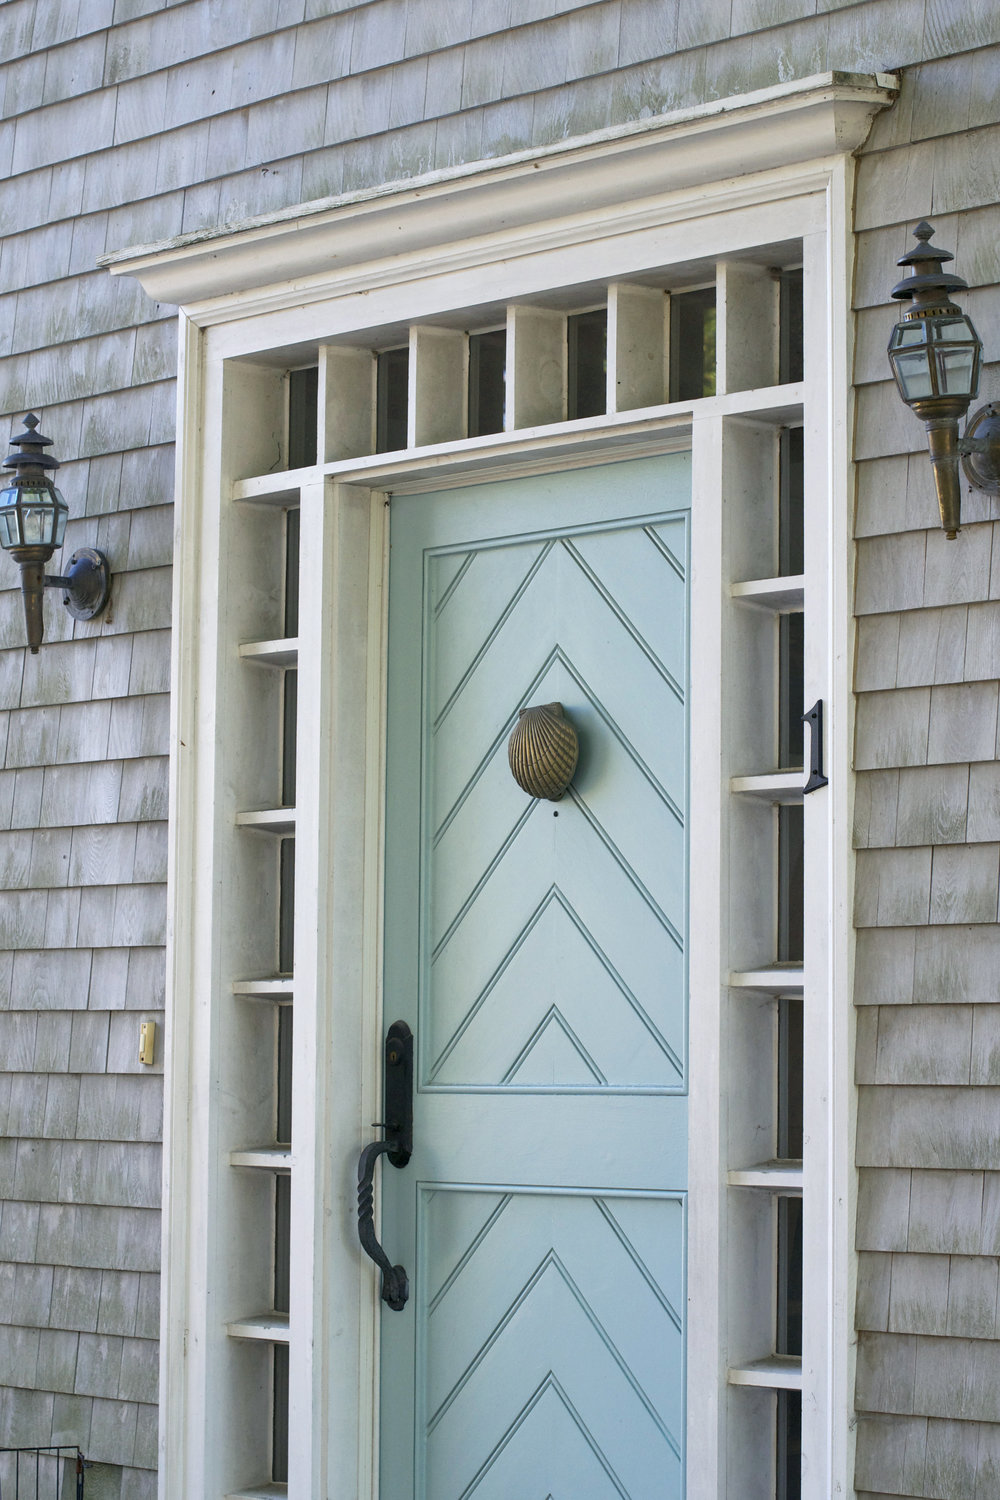 Chester-aqua-shell-knocker-door.jpg